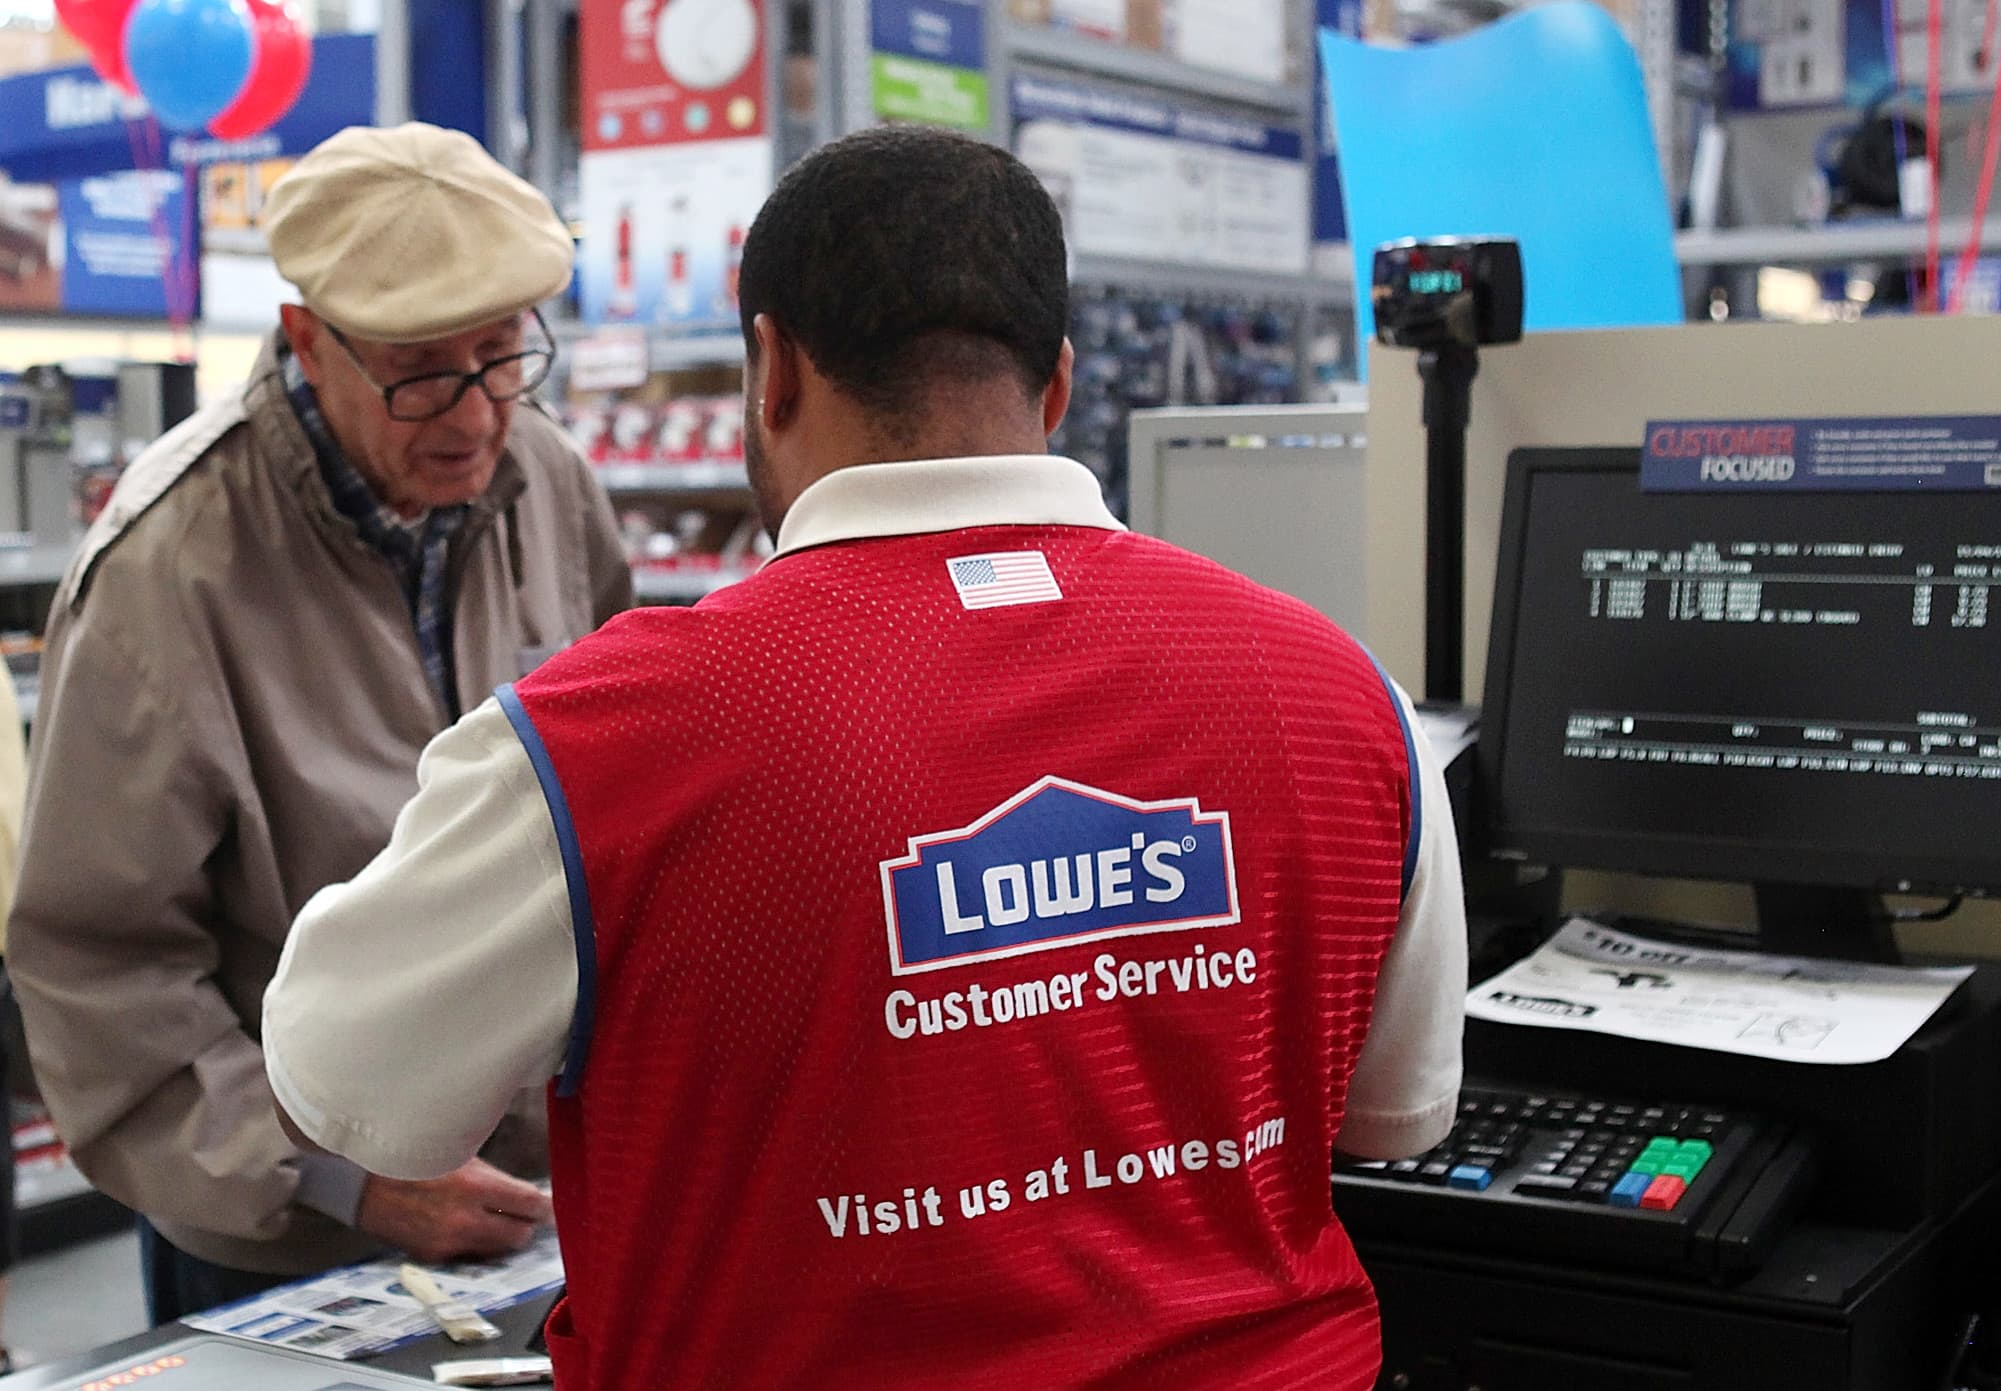 Lowes Stock Quote D.eshaw & Co Builds Activist Position In Lowe's